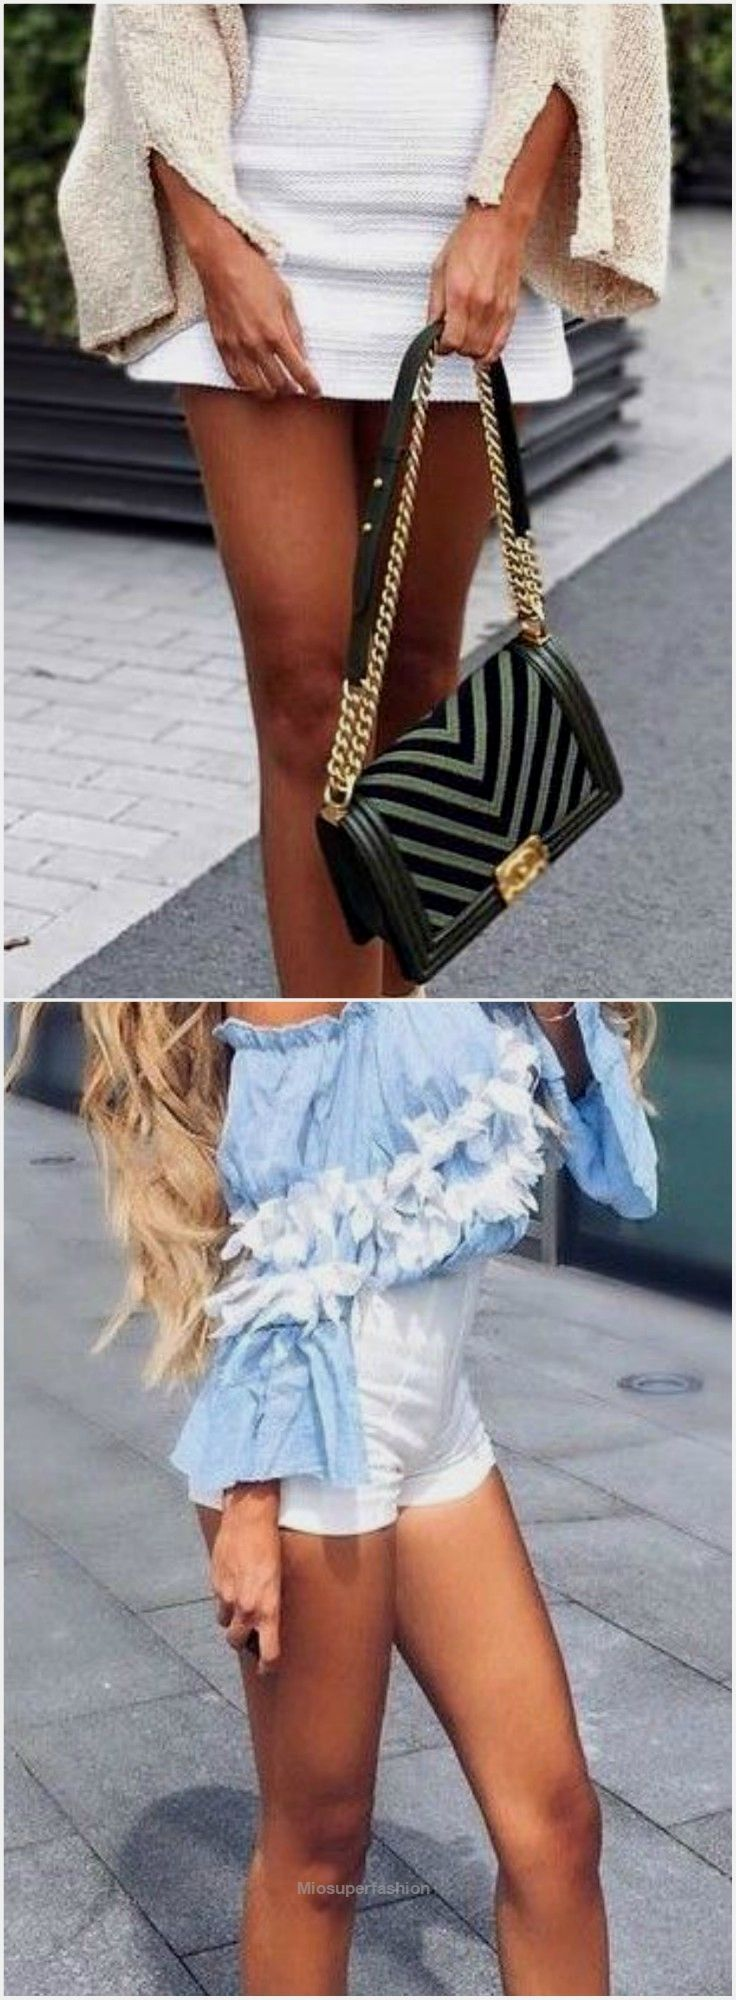 summer trendy practices, summer fashion 2017 pinterest,swimming clothing, cute shirts for middle school,cute outfits summer,beautiful outfits for winter,school appropriate outfits for summer,cute back to high school outfits for high school,what to dress i